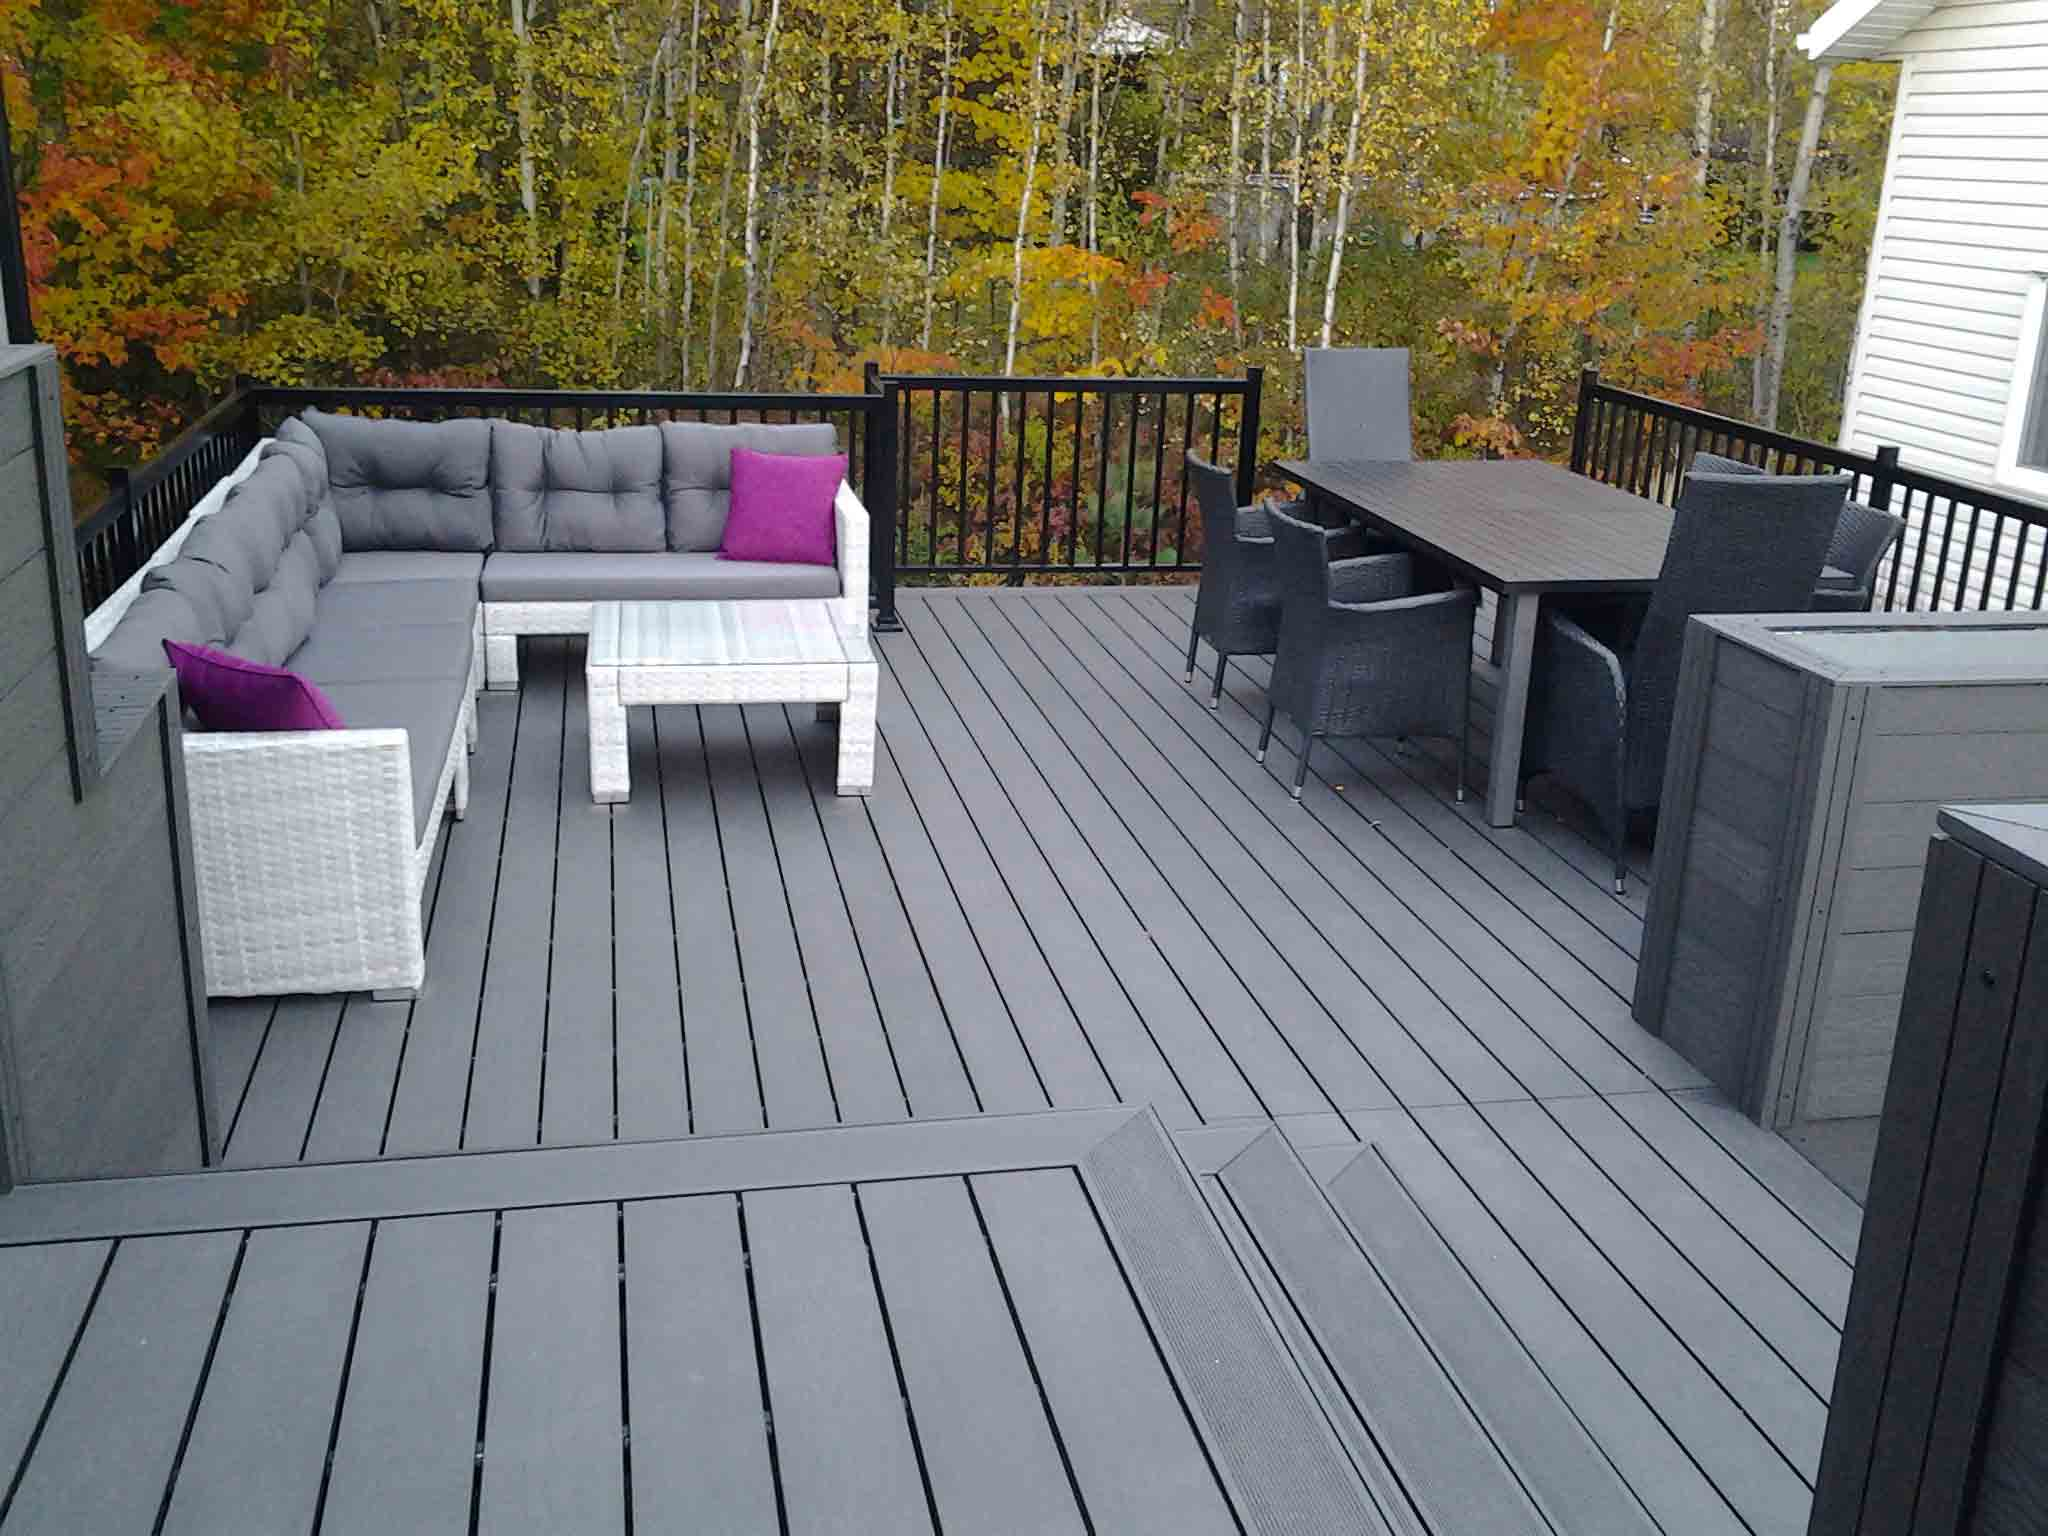 terrasse en composite ezdeck design patio en composite. Black Bedroom Furniture Sets. Home Design Ideas